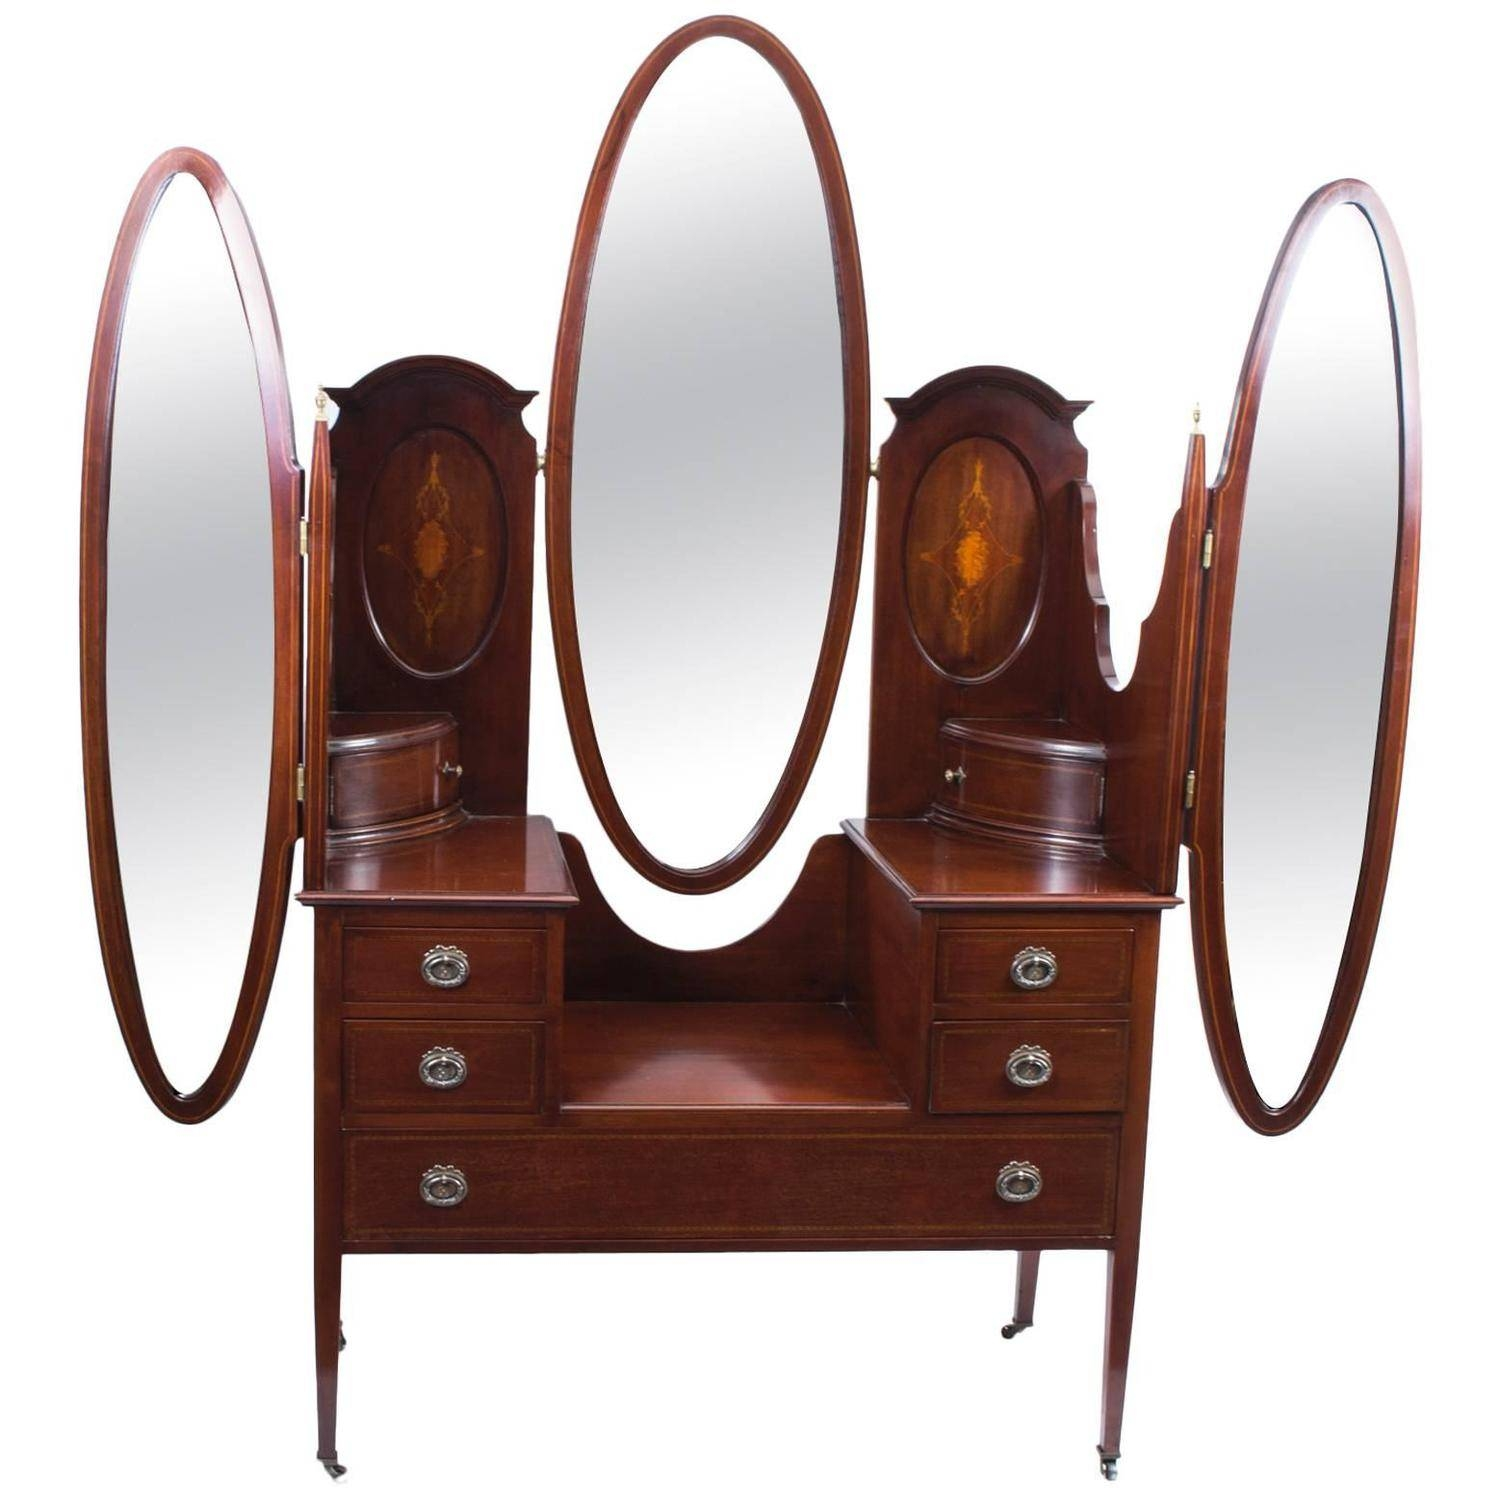 Edwardian Mirrors - 23 For Sale At 1Stdibs pertaining to Triple Oval Mirrors (Image 8 of 25)